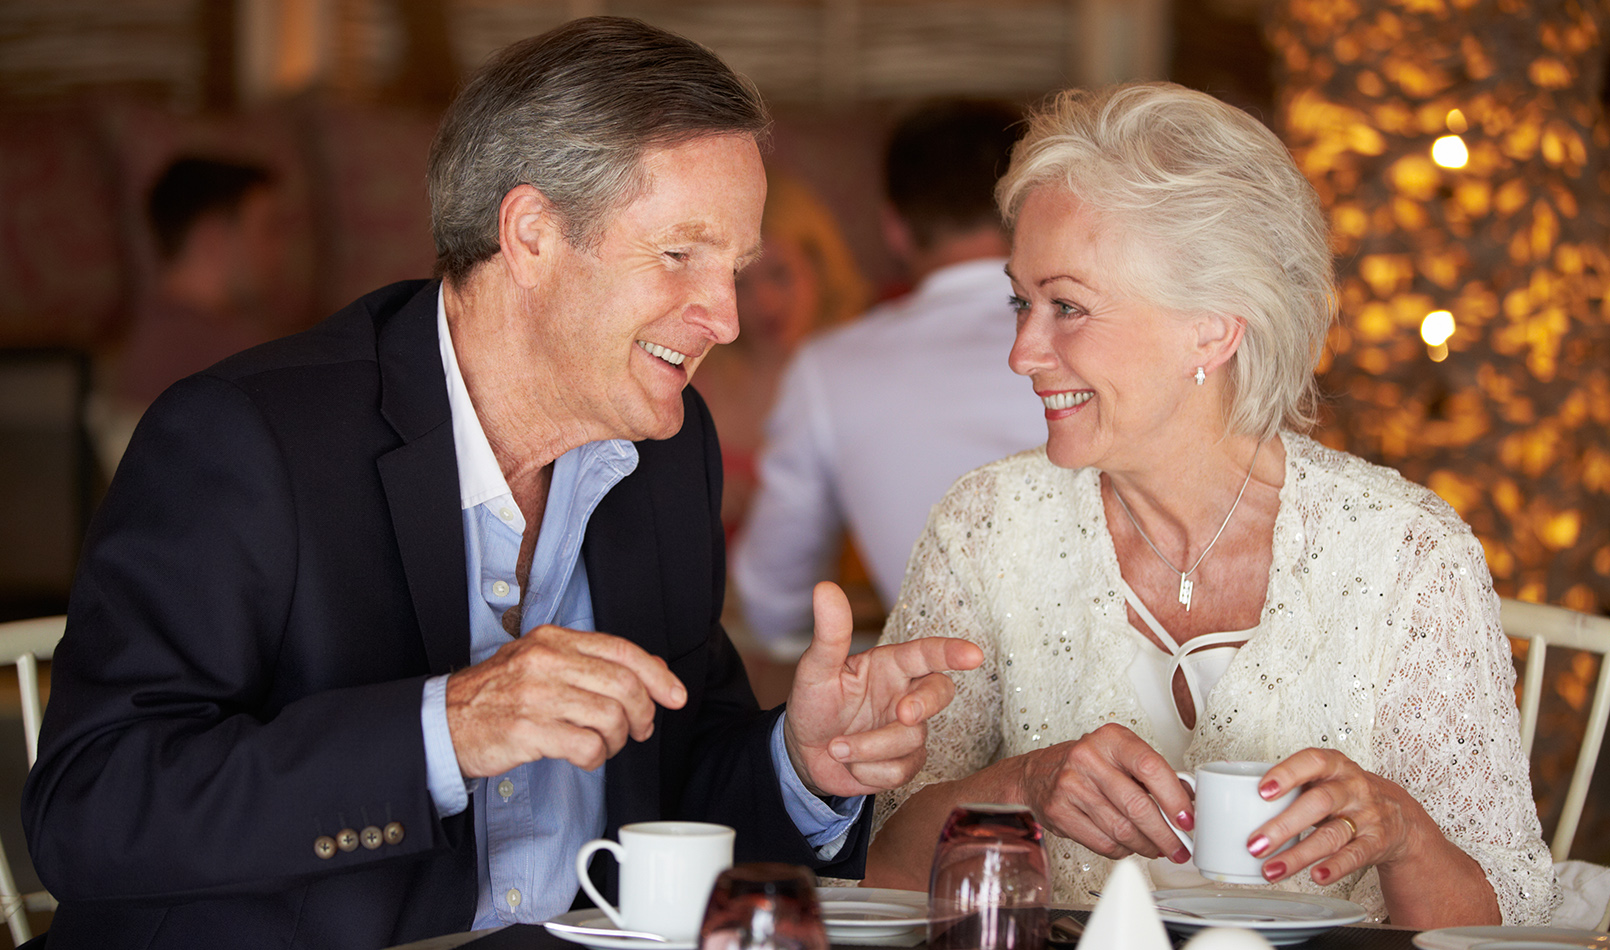 magazine senior singles There can be many challenges senior singles face when approaching online  dating communities like ourtime sometimes people have been out of the dating .